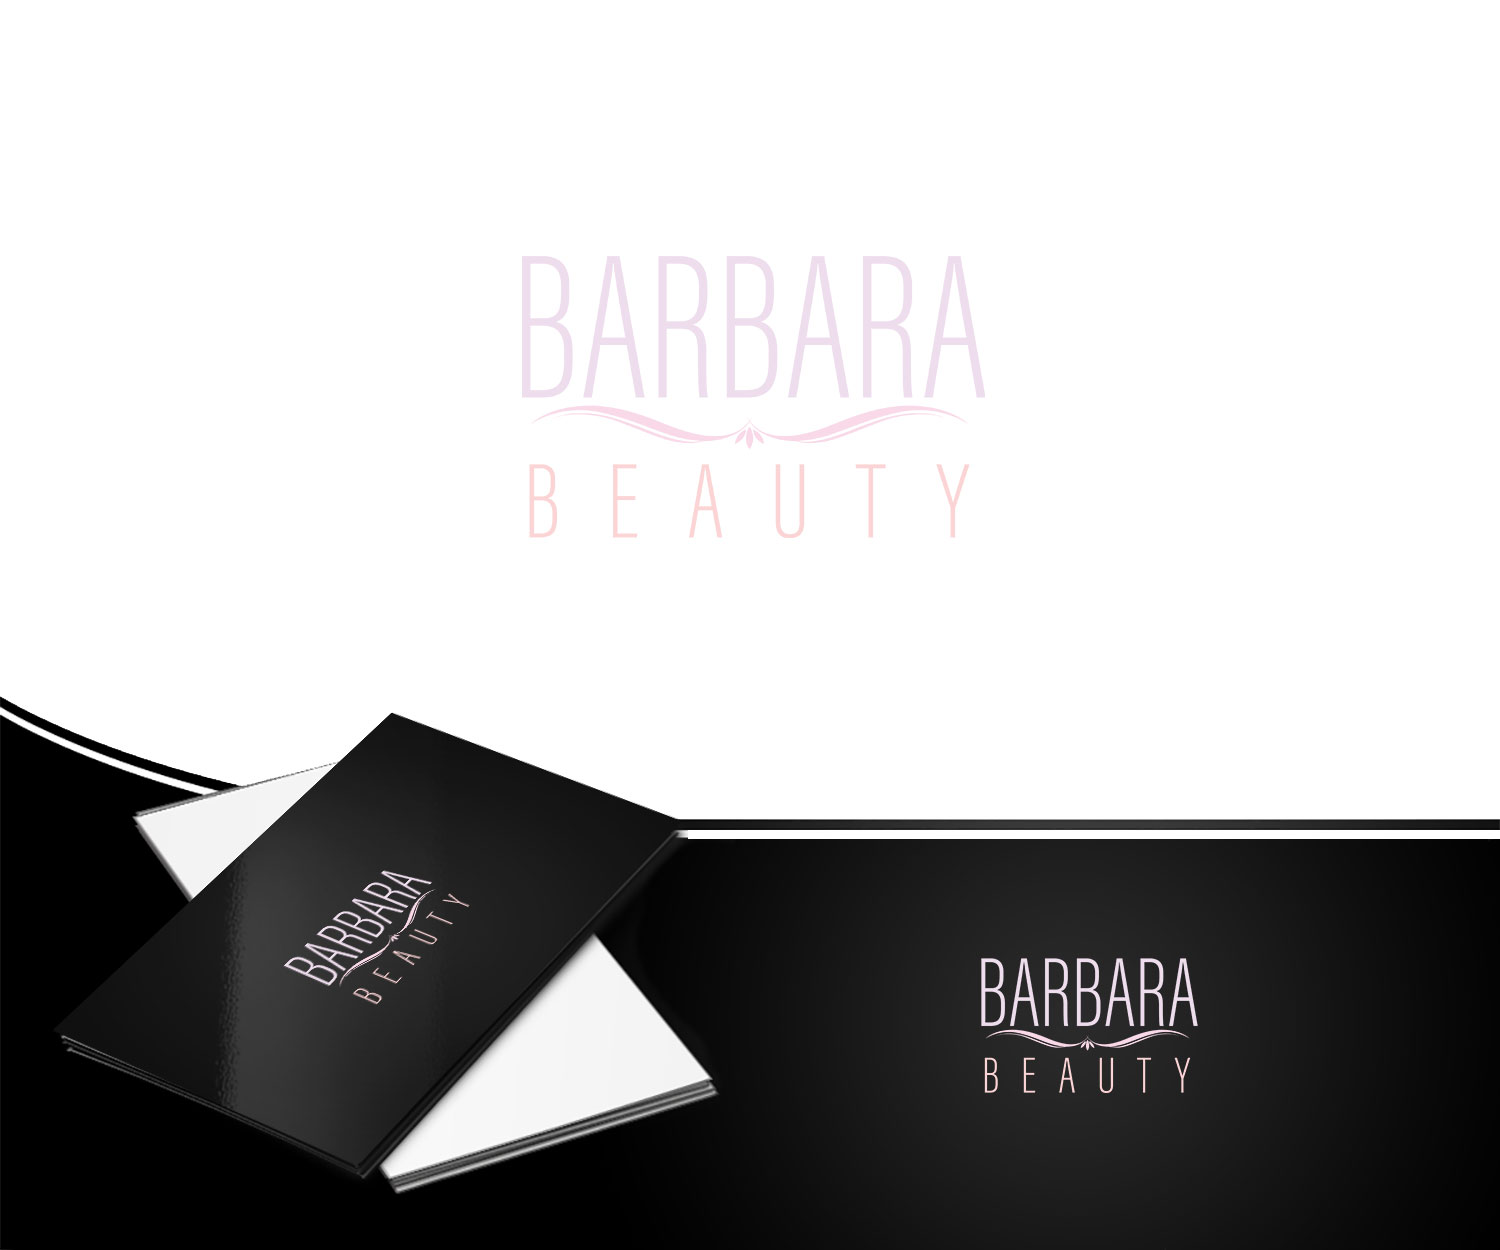 Salon Creation Elegant Playful Beauty Salon Logo Design For Barbara Beauty By